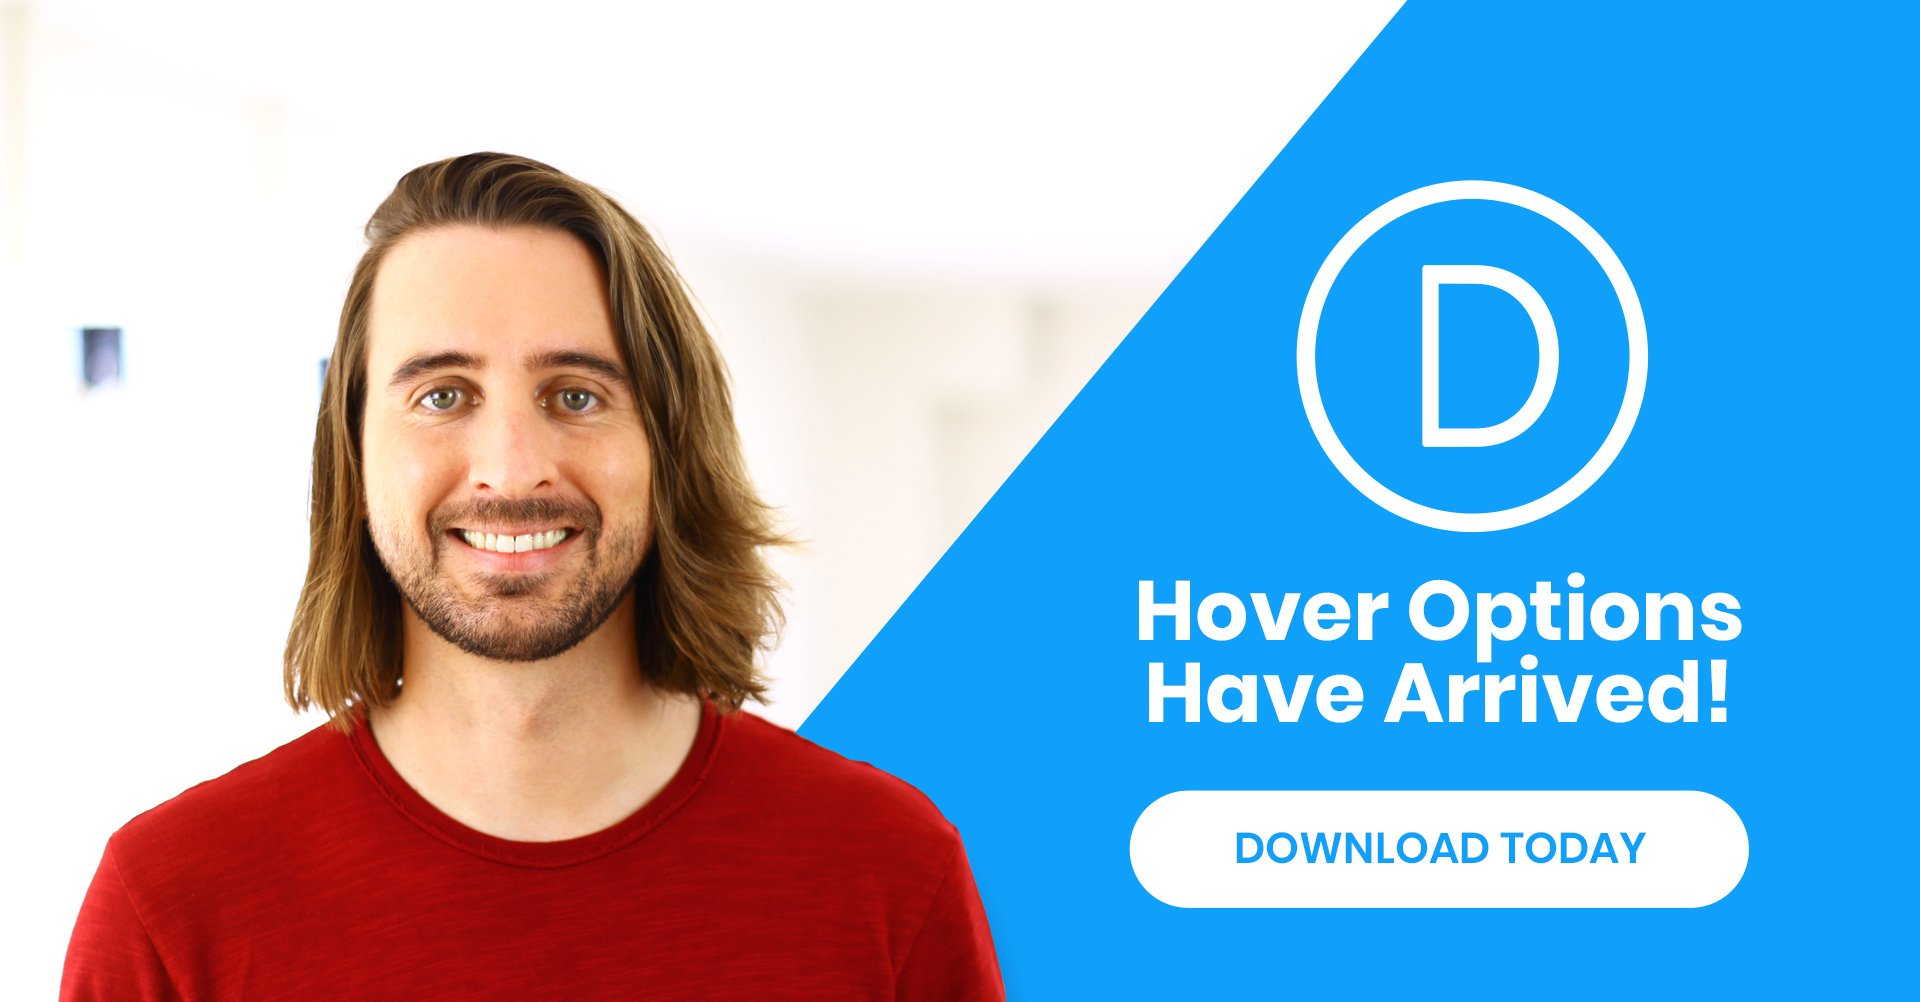 Divi Hover Options Have Arrived!